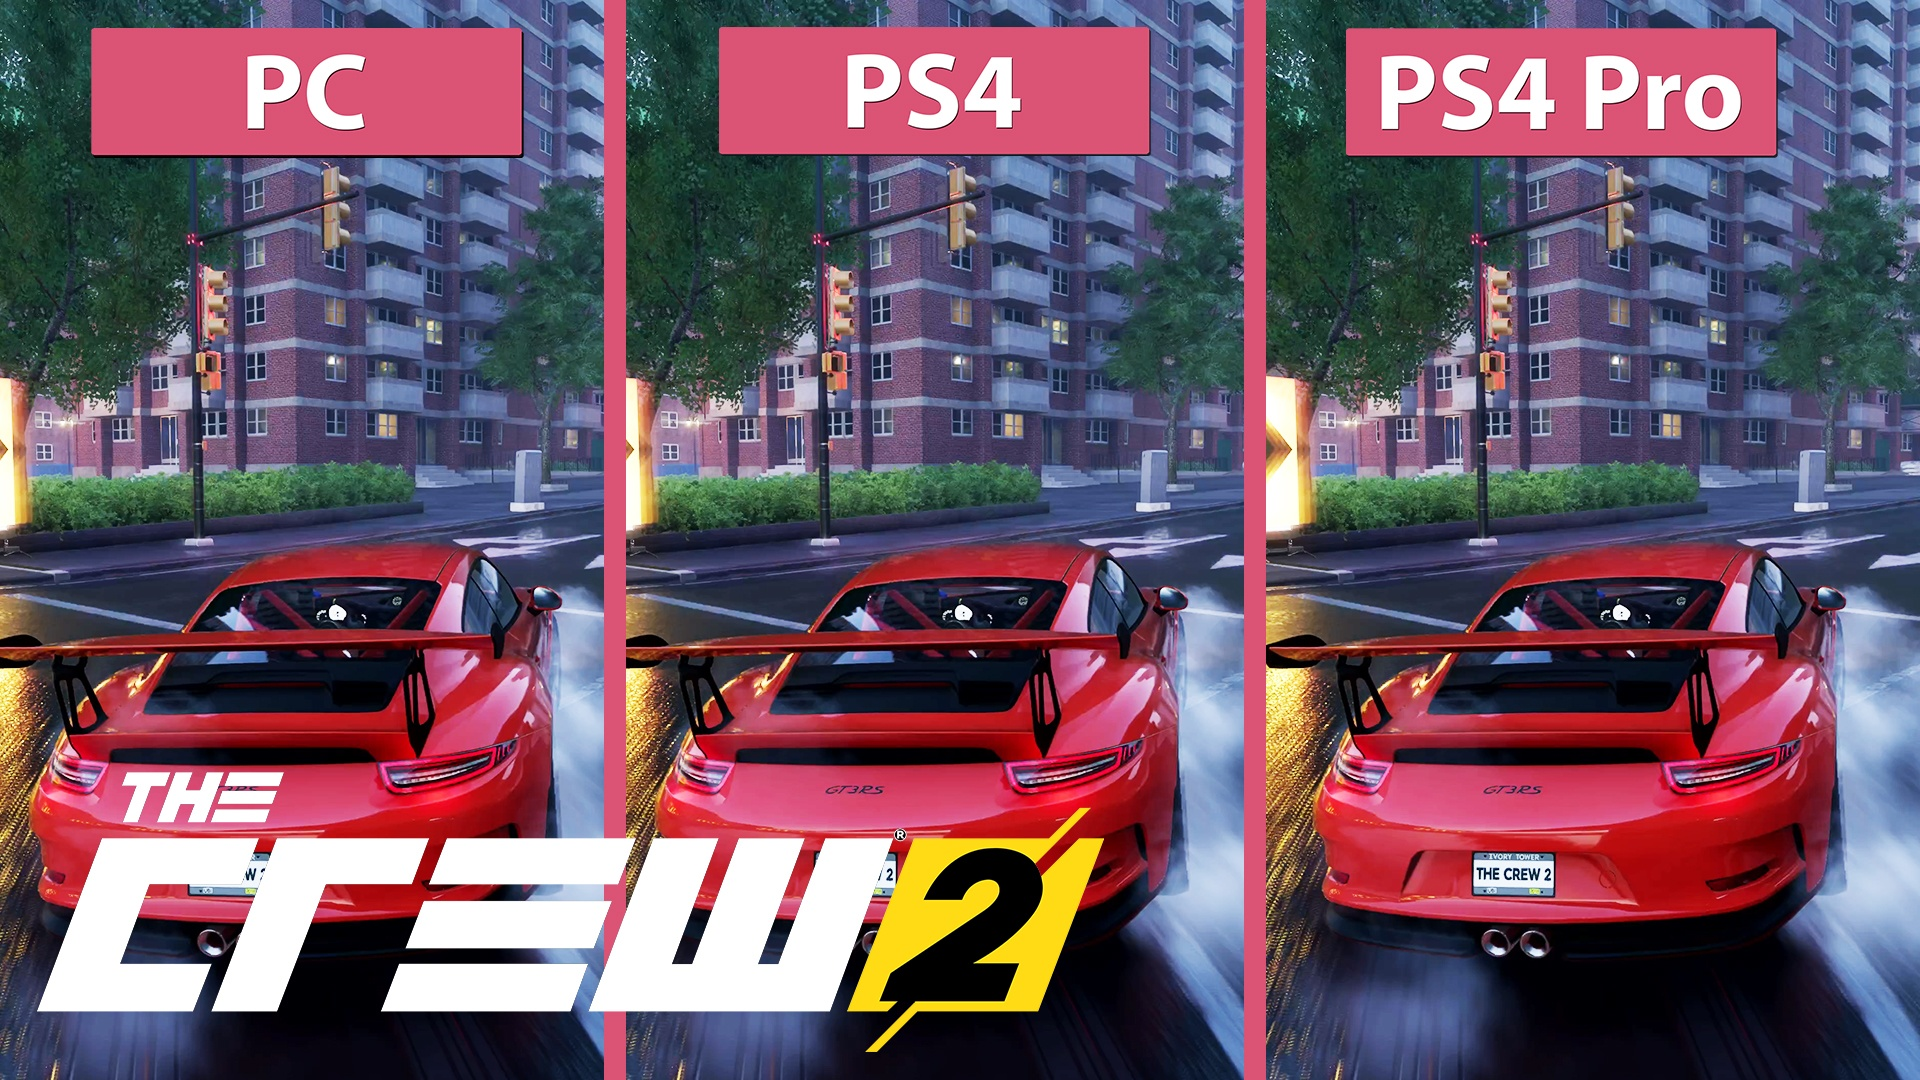 the crew 2 pc gegen ps4 und ps4 pro im grafikvergleich gamestar. Black Bedroom Furniture Sets. Home Design Ideas